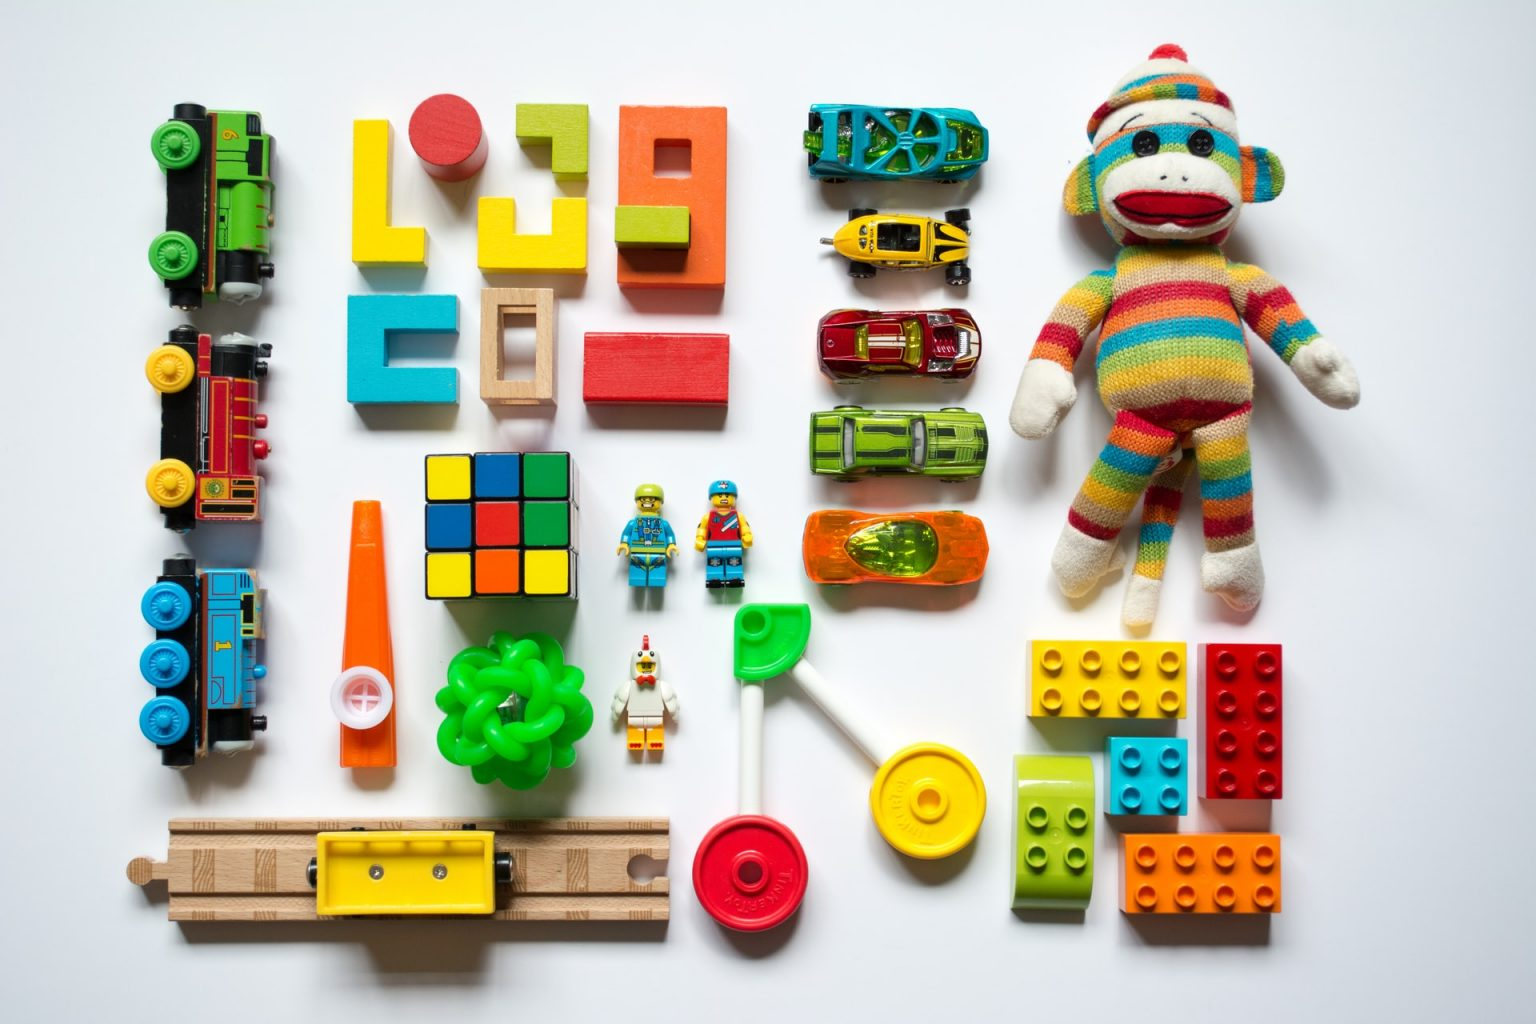 Still life photograph of a white background laid out with multiple brightly coloured children's toys: Thomas trains, a train track, blocks, a Rubik's cube, a kazoo, a bouncing ball, Lego figures, Hot Wheels, a striped sock monkey, Lego blocks, and connecting toys.